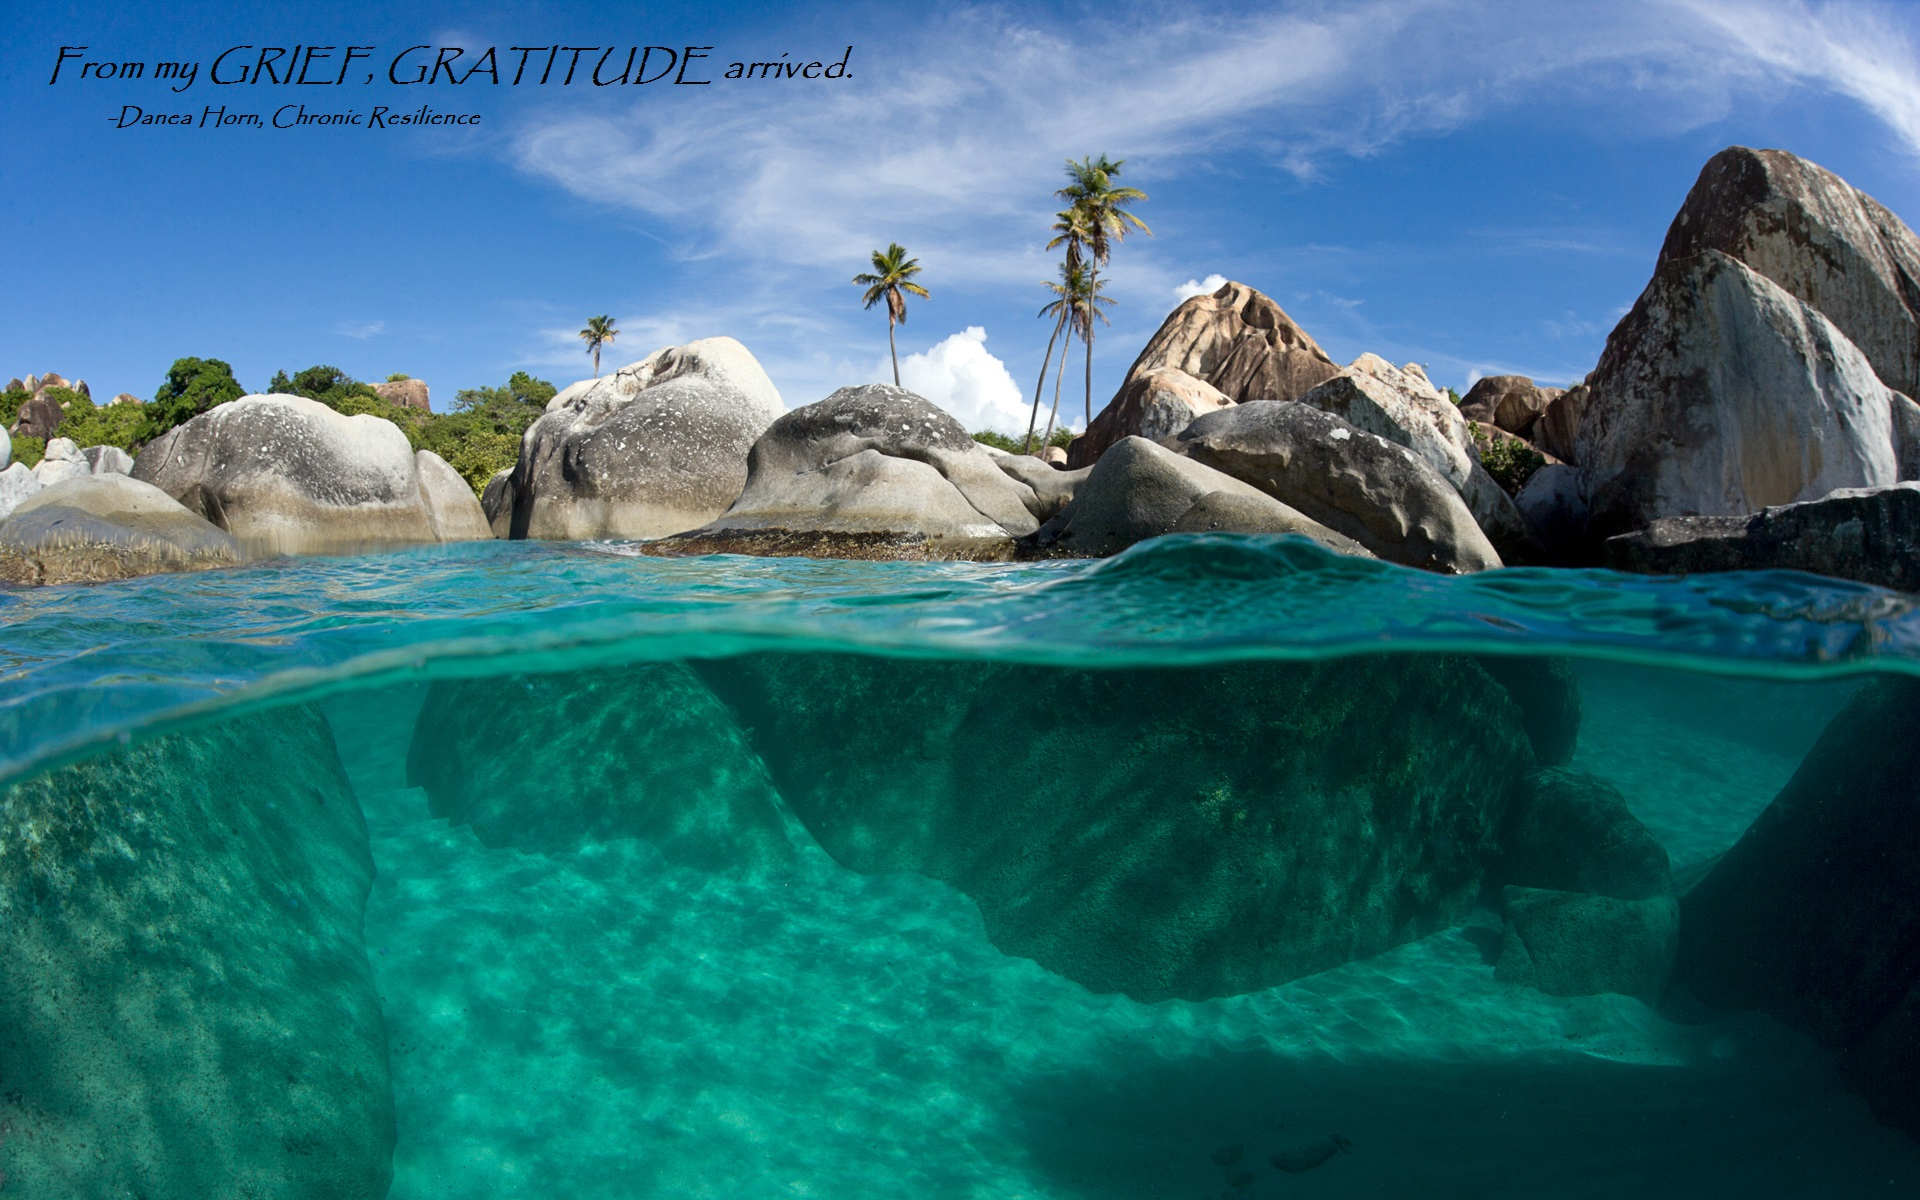 Underwater split view with turquoise waters, palm trees and giant rocks, The Baths, Virgin Gorda, British Virgin Islands, Caribbean